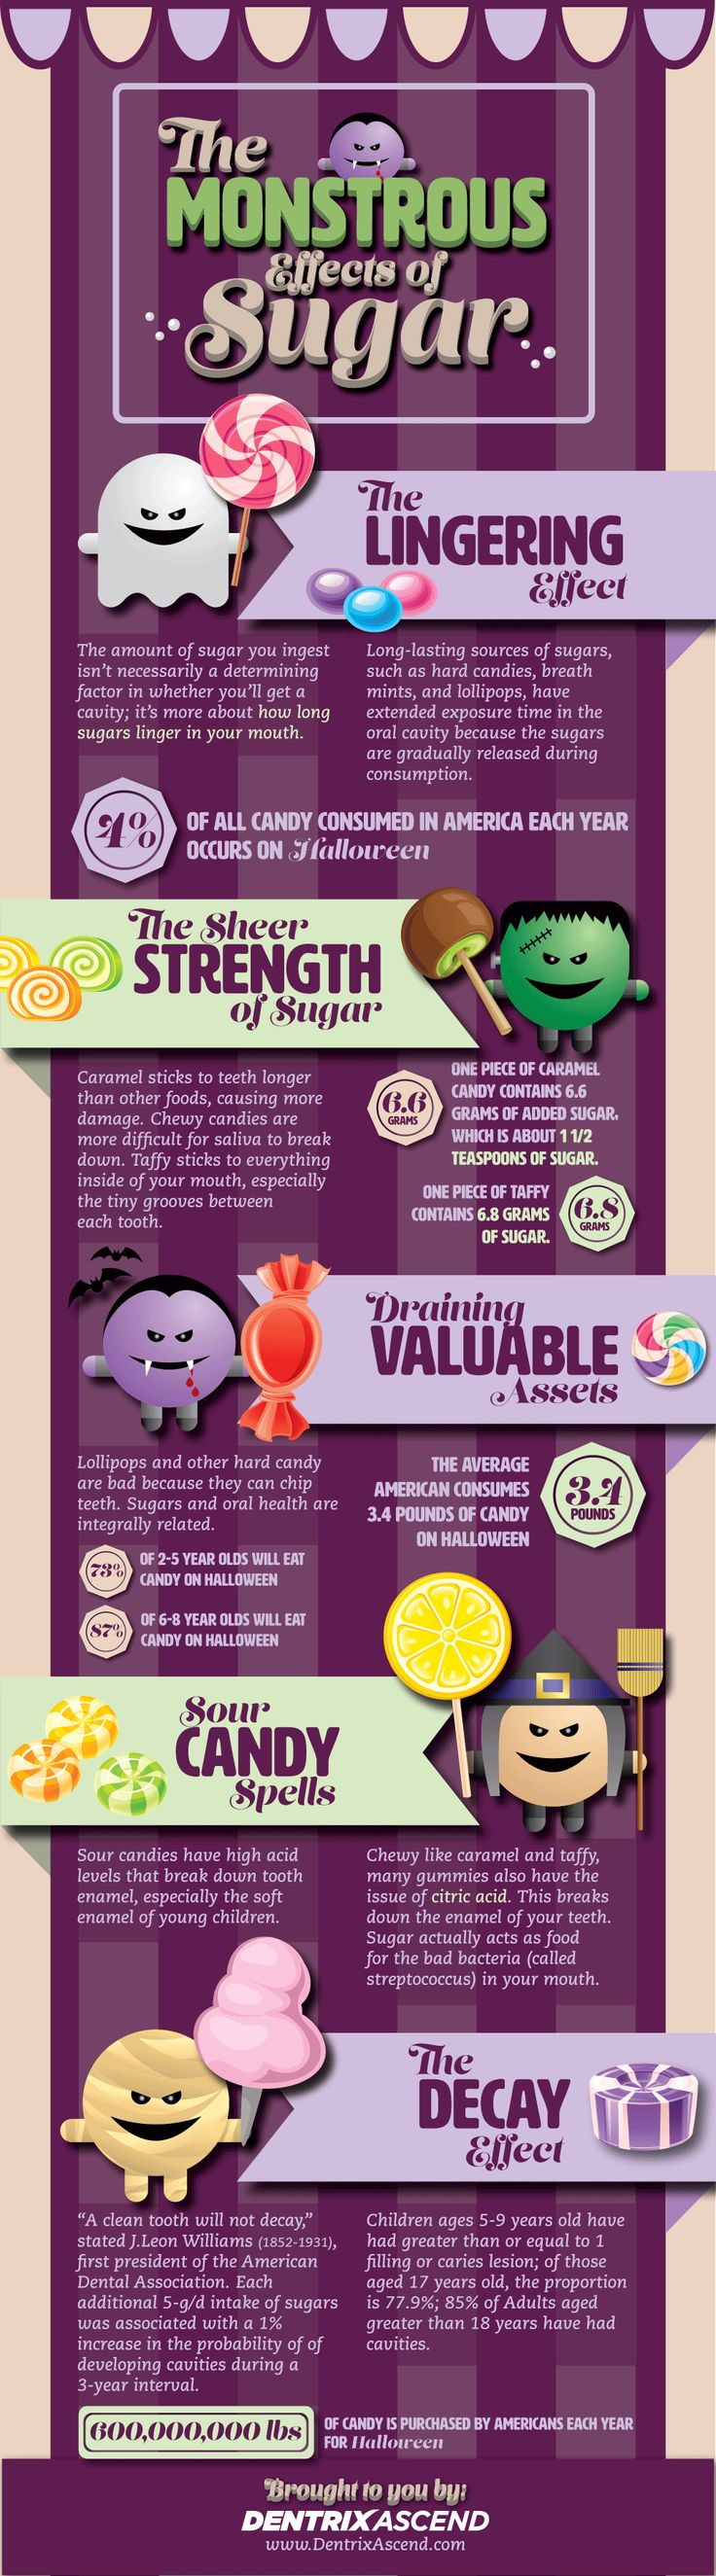 Scary stuff happens to teeth at Halloween: Check out this infographic on sugar's monstrous effects